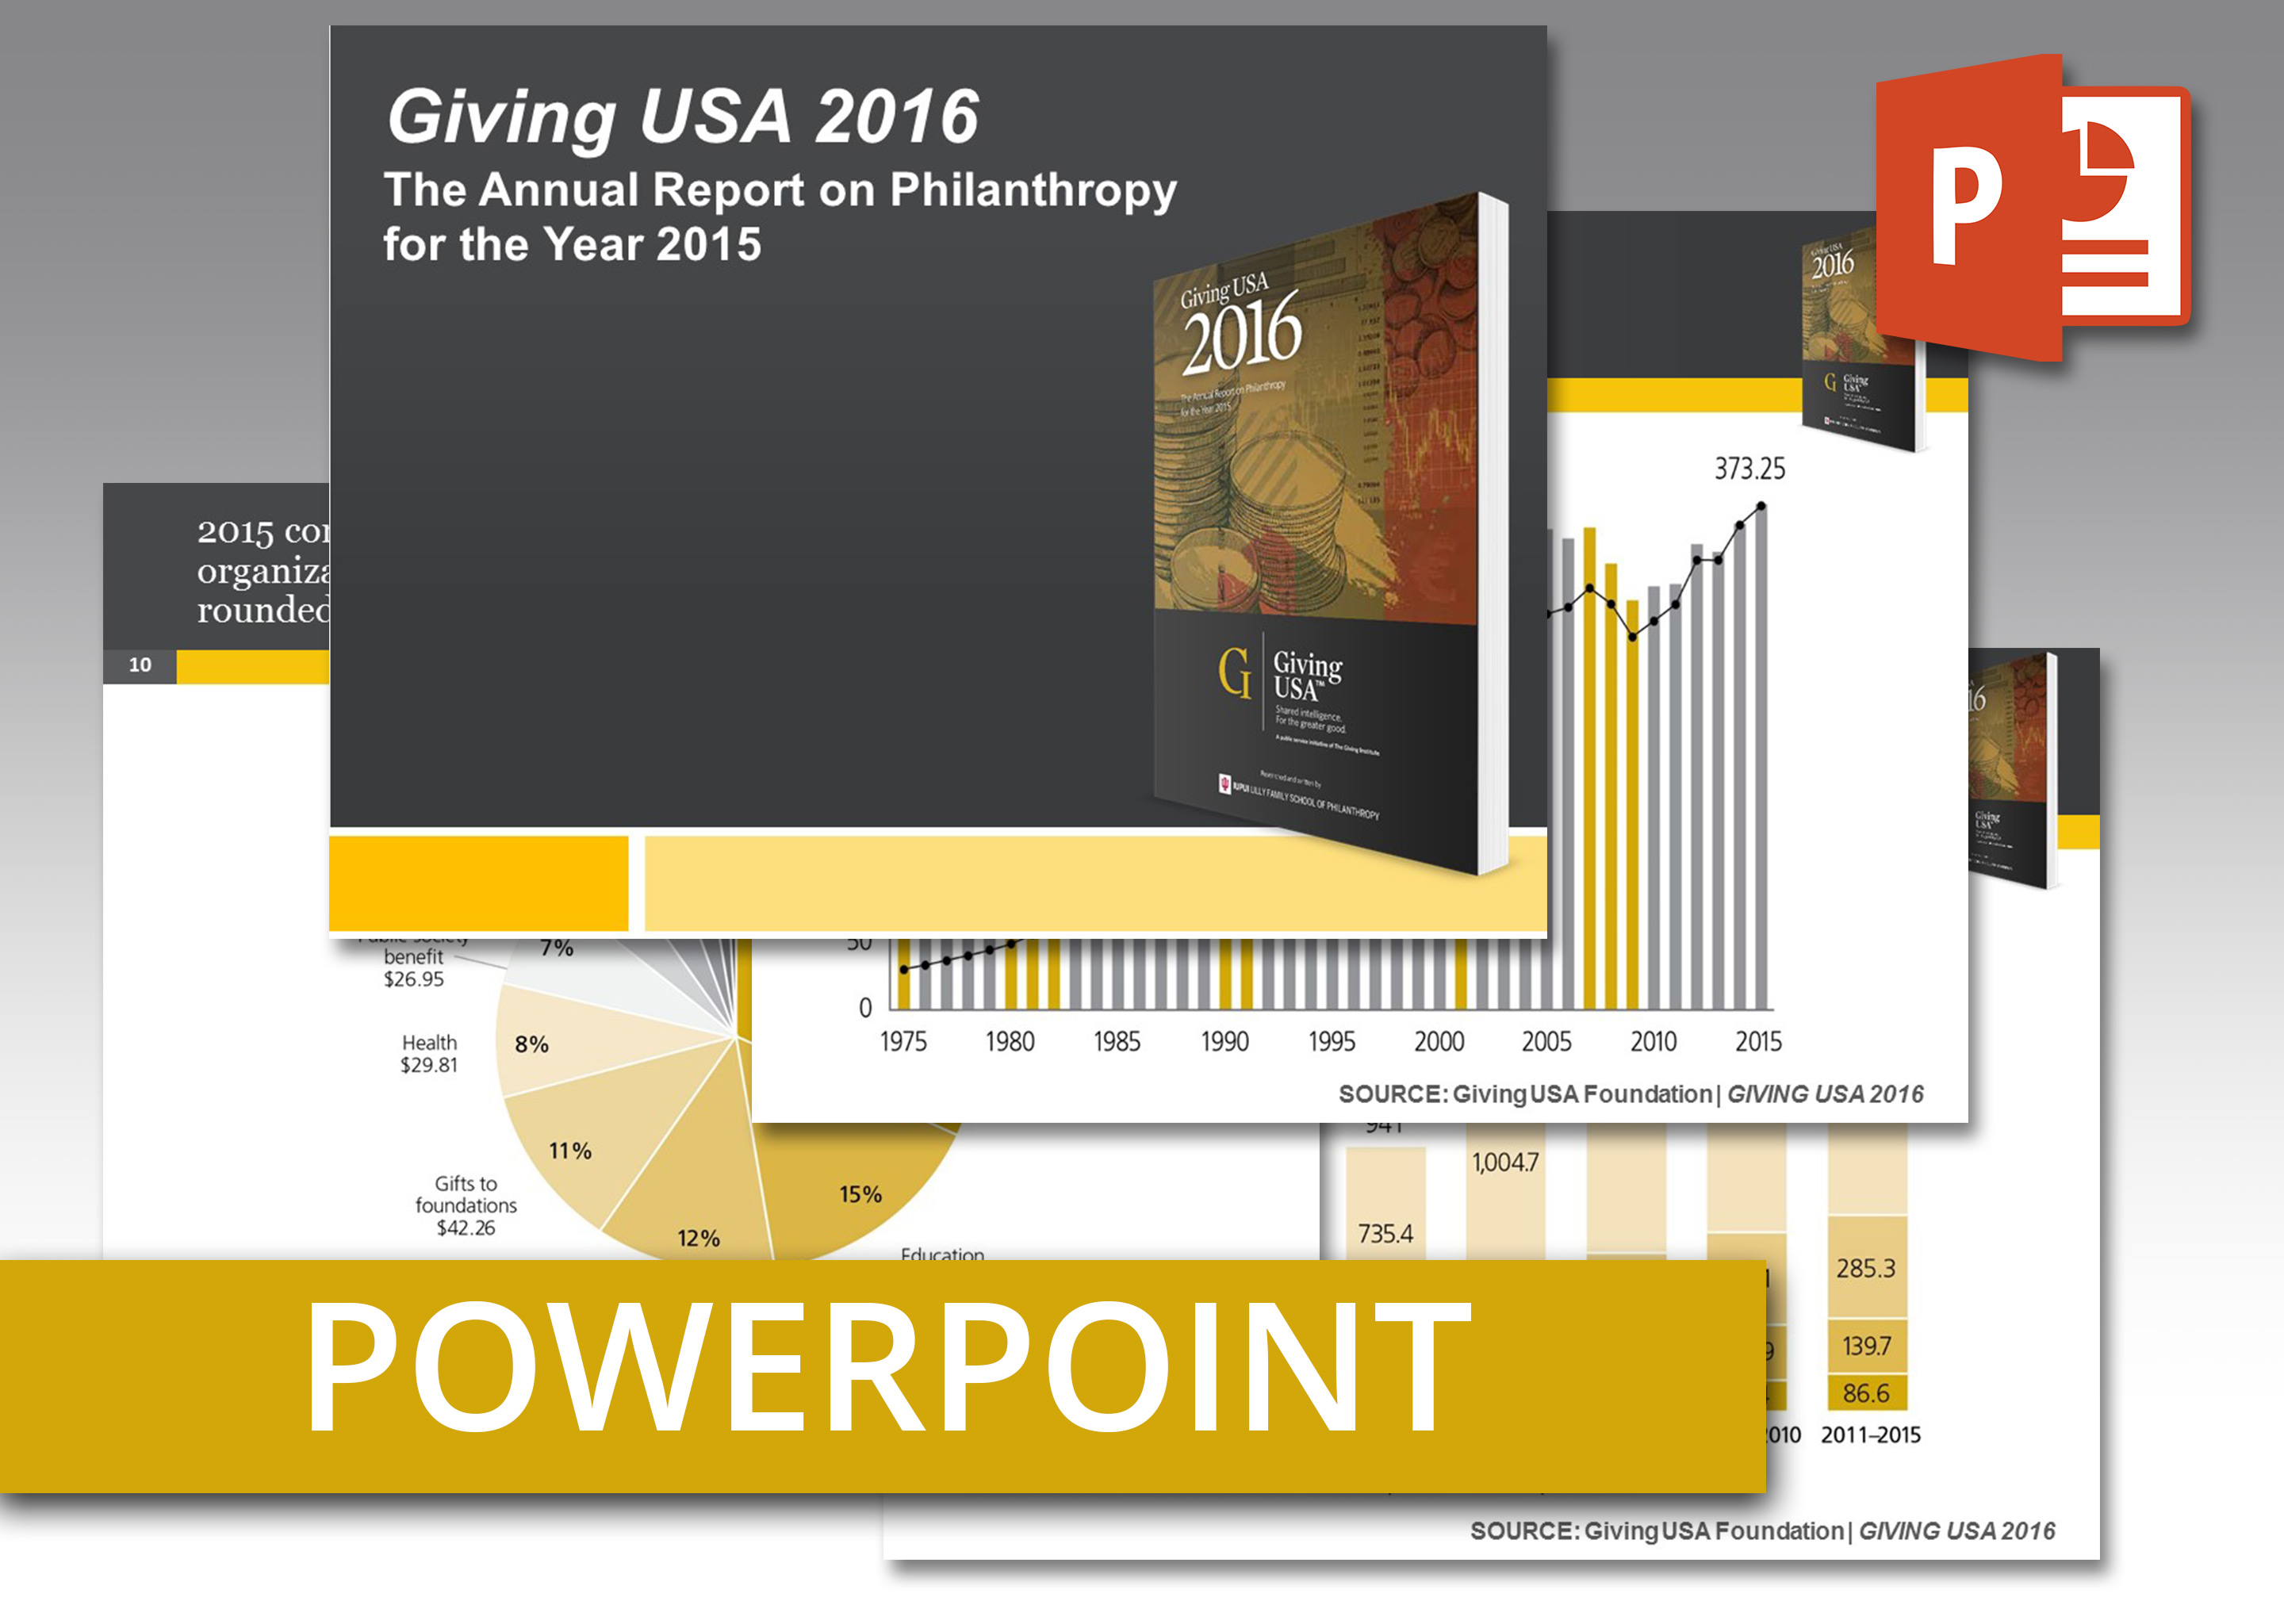 Coolmathgamesus  Pleasing Giving Usa  Powerpoint An Easytouse Presentation Of Report  With Engaging Giving Usa  Powerpoint An Easytouse Presentation Of Report Findings Including Talking Points With Lovely Powerpoint Courses Online Free Also Worship Lyrics Powerpoint In Addition Powerpoint Backgounds And Free Download Powerpoint Slide As Well As Powerpoint Charts Templates Additionally Powerpoint Slide Effects From Givingusaorg With Coolmathgamesus  Engaging Giving Usa  Powerpoint An Easytouse Presentation Of Report  With Lovely Giving Usa  Powerpoint An Easytouse Presentation Of Report Findings Including Talking Points And Pleasing Powerpoint Courses Online Free Also Worship Lyrics Powerpoint In Addition Powerpoint Backgounds From Givingusaorg